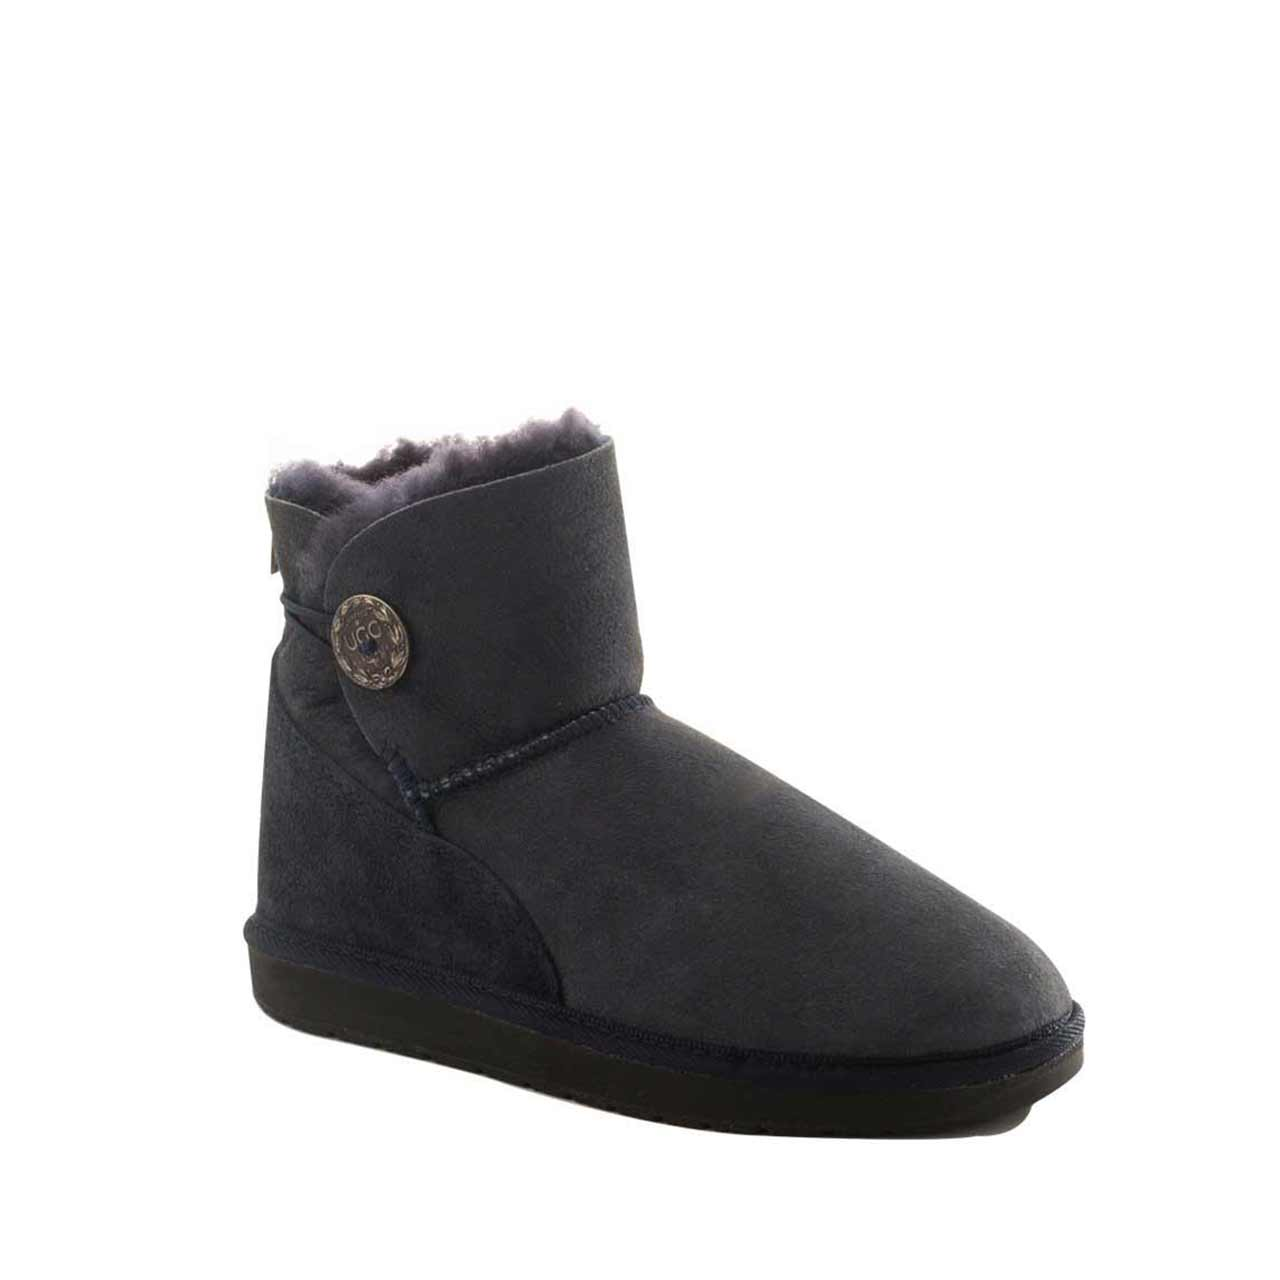 Brighton Mini Boots | The One and Only | Ugg Australia®